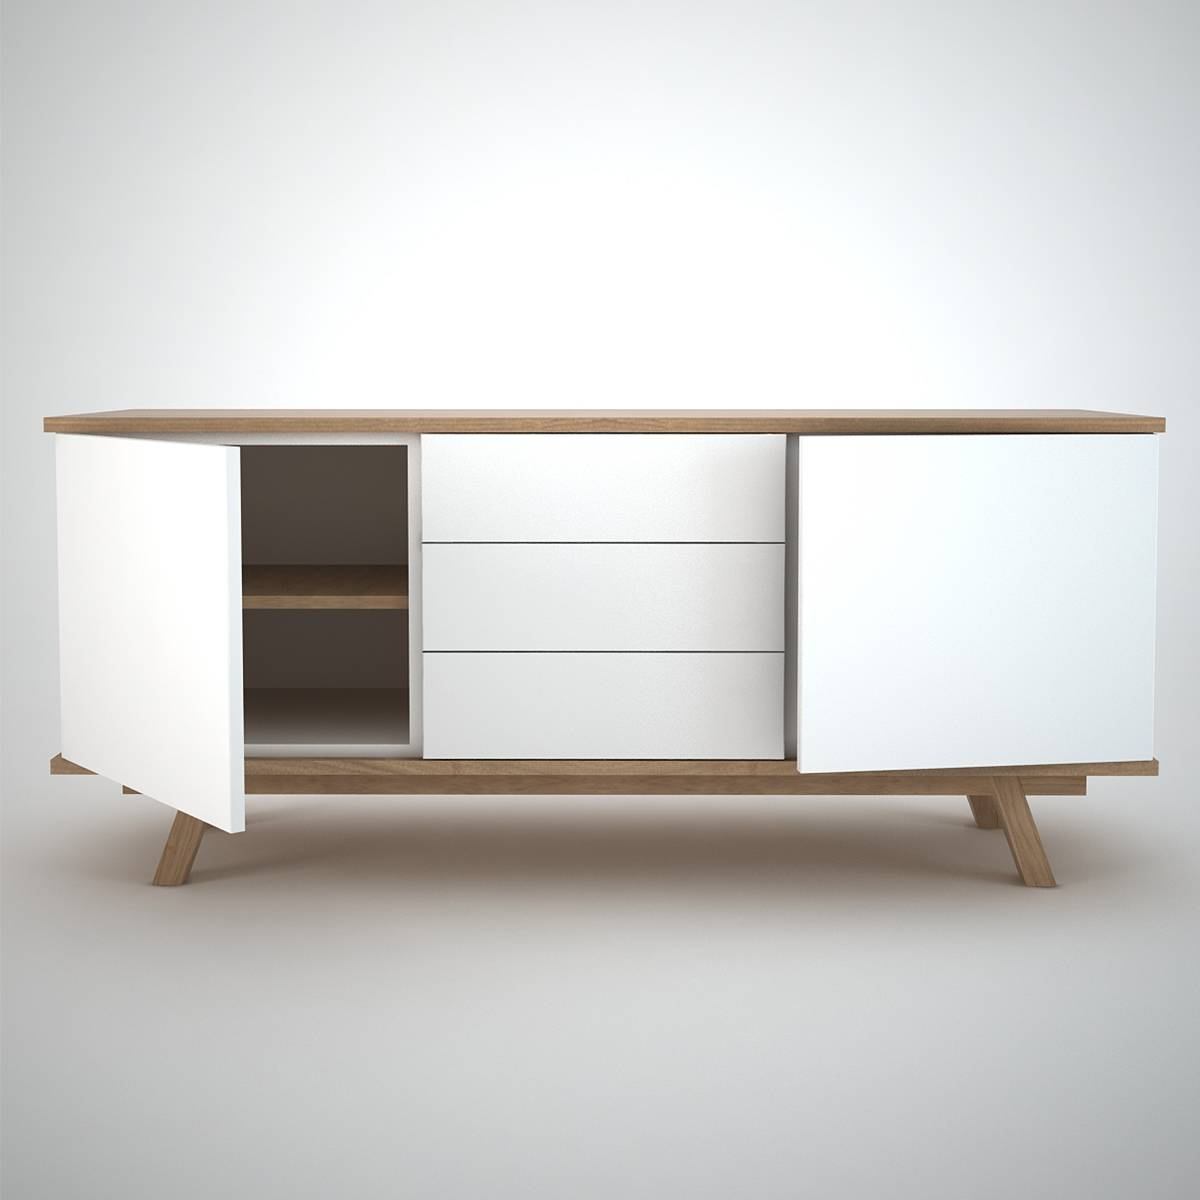 Fancy Modern White Sideboards 31 For With Modern White Sideboards regarding Sideboards (Image 12 of 30)